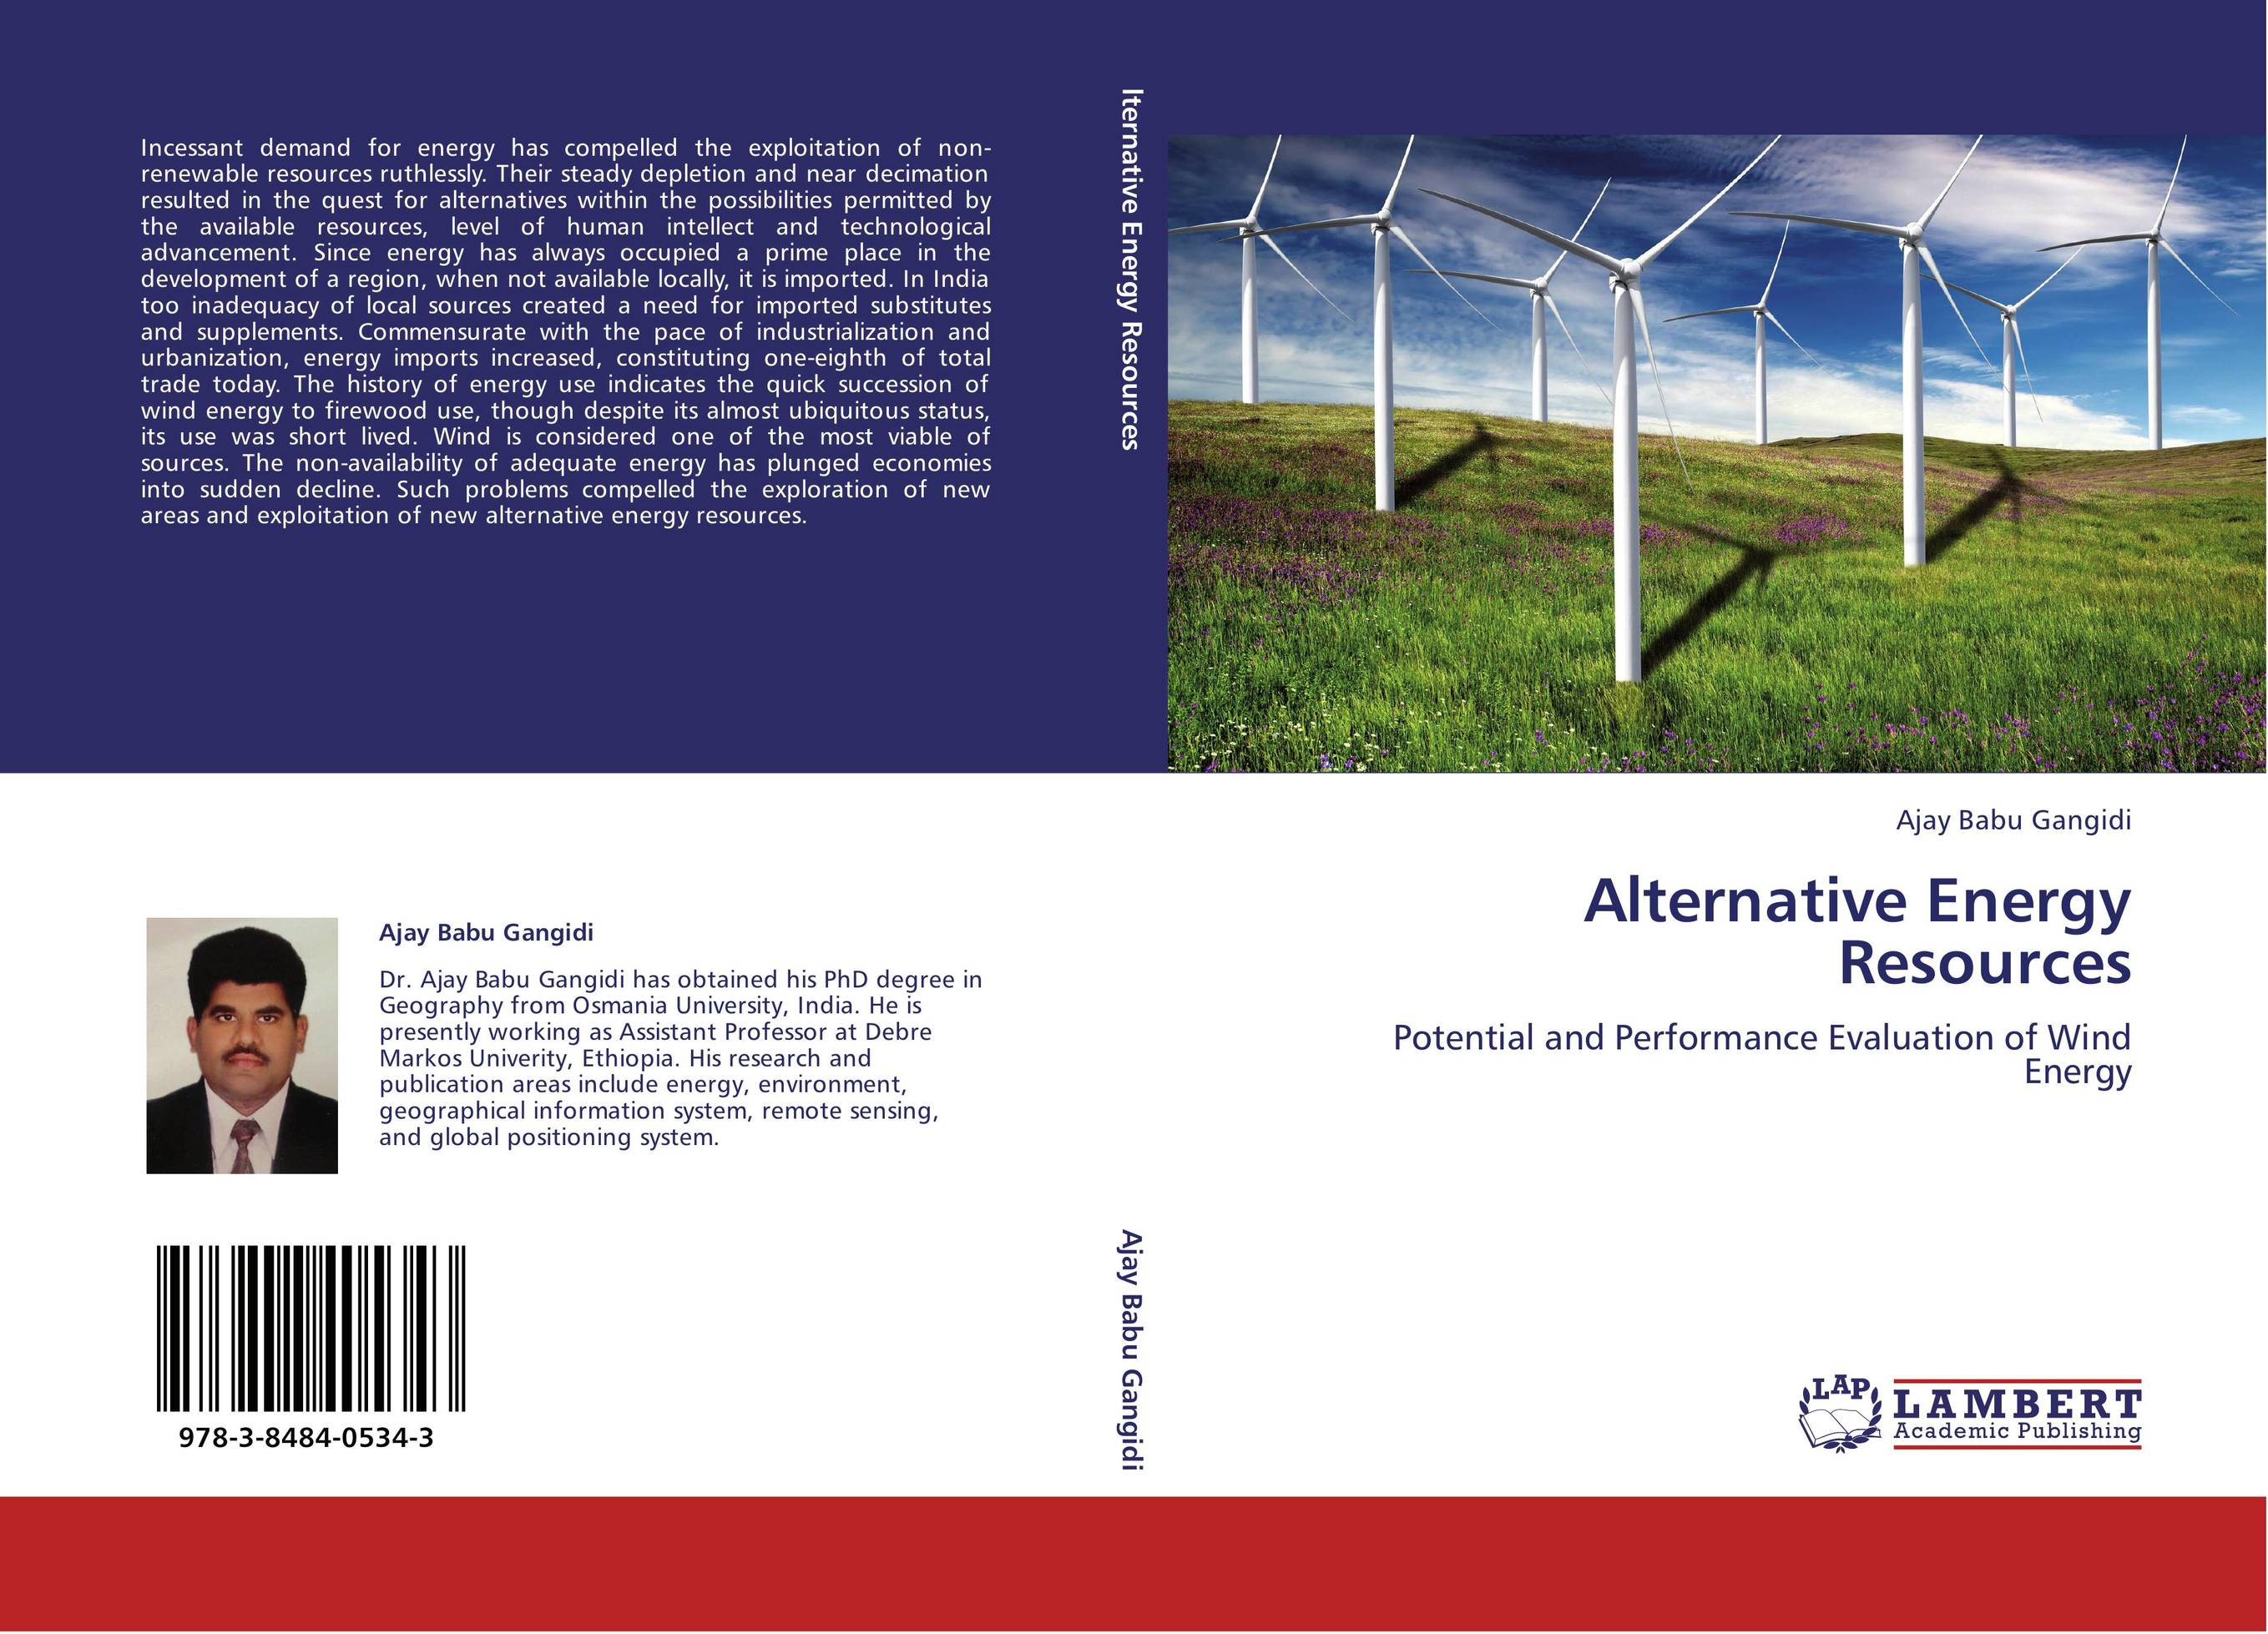 energy demands alternative energy resources Although renewable energy technologies (ret) such as wind, water, solar, and geothermal are becoming more accessible — and already cover the energy demands of some neighbourhoods if not whole cities in certain areas — intermittence of supply and high upfront costs are the main deterrents of a wider adoption.